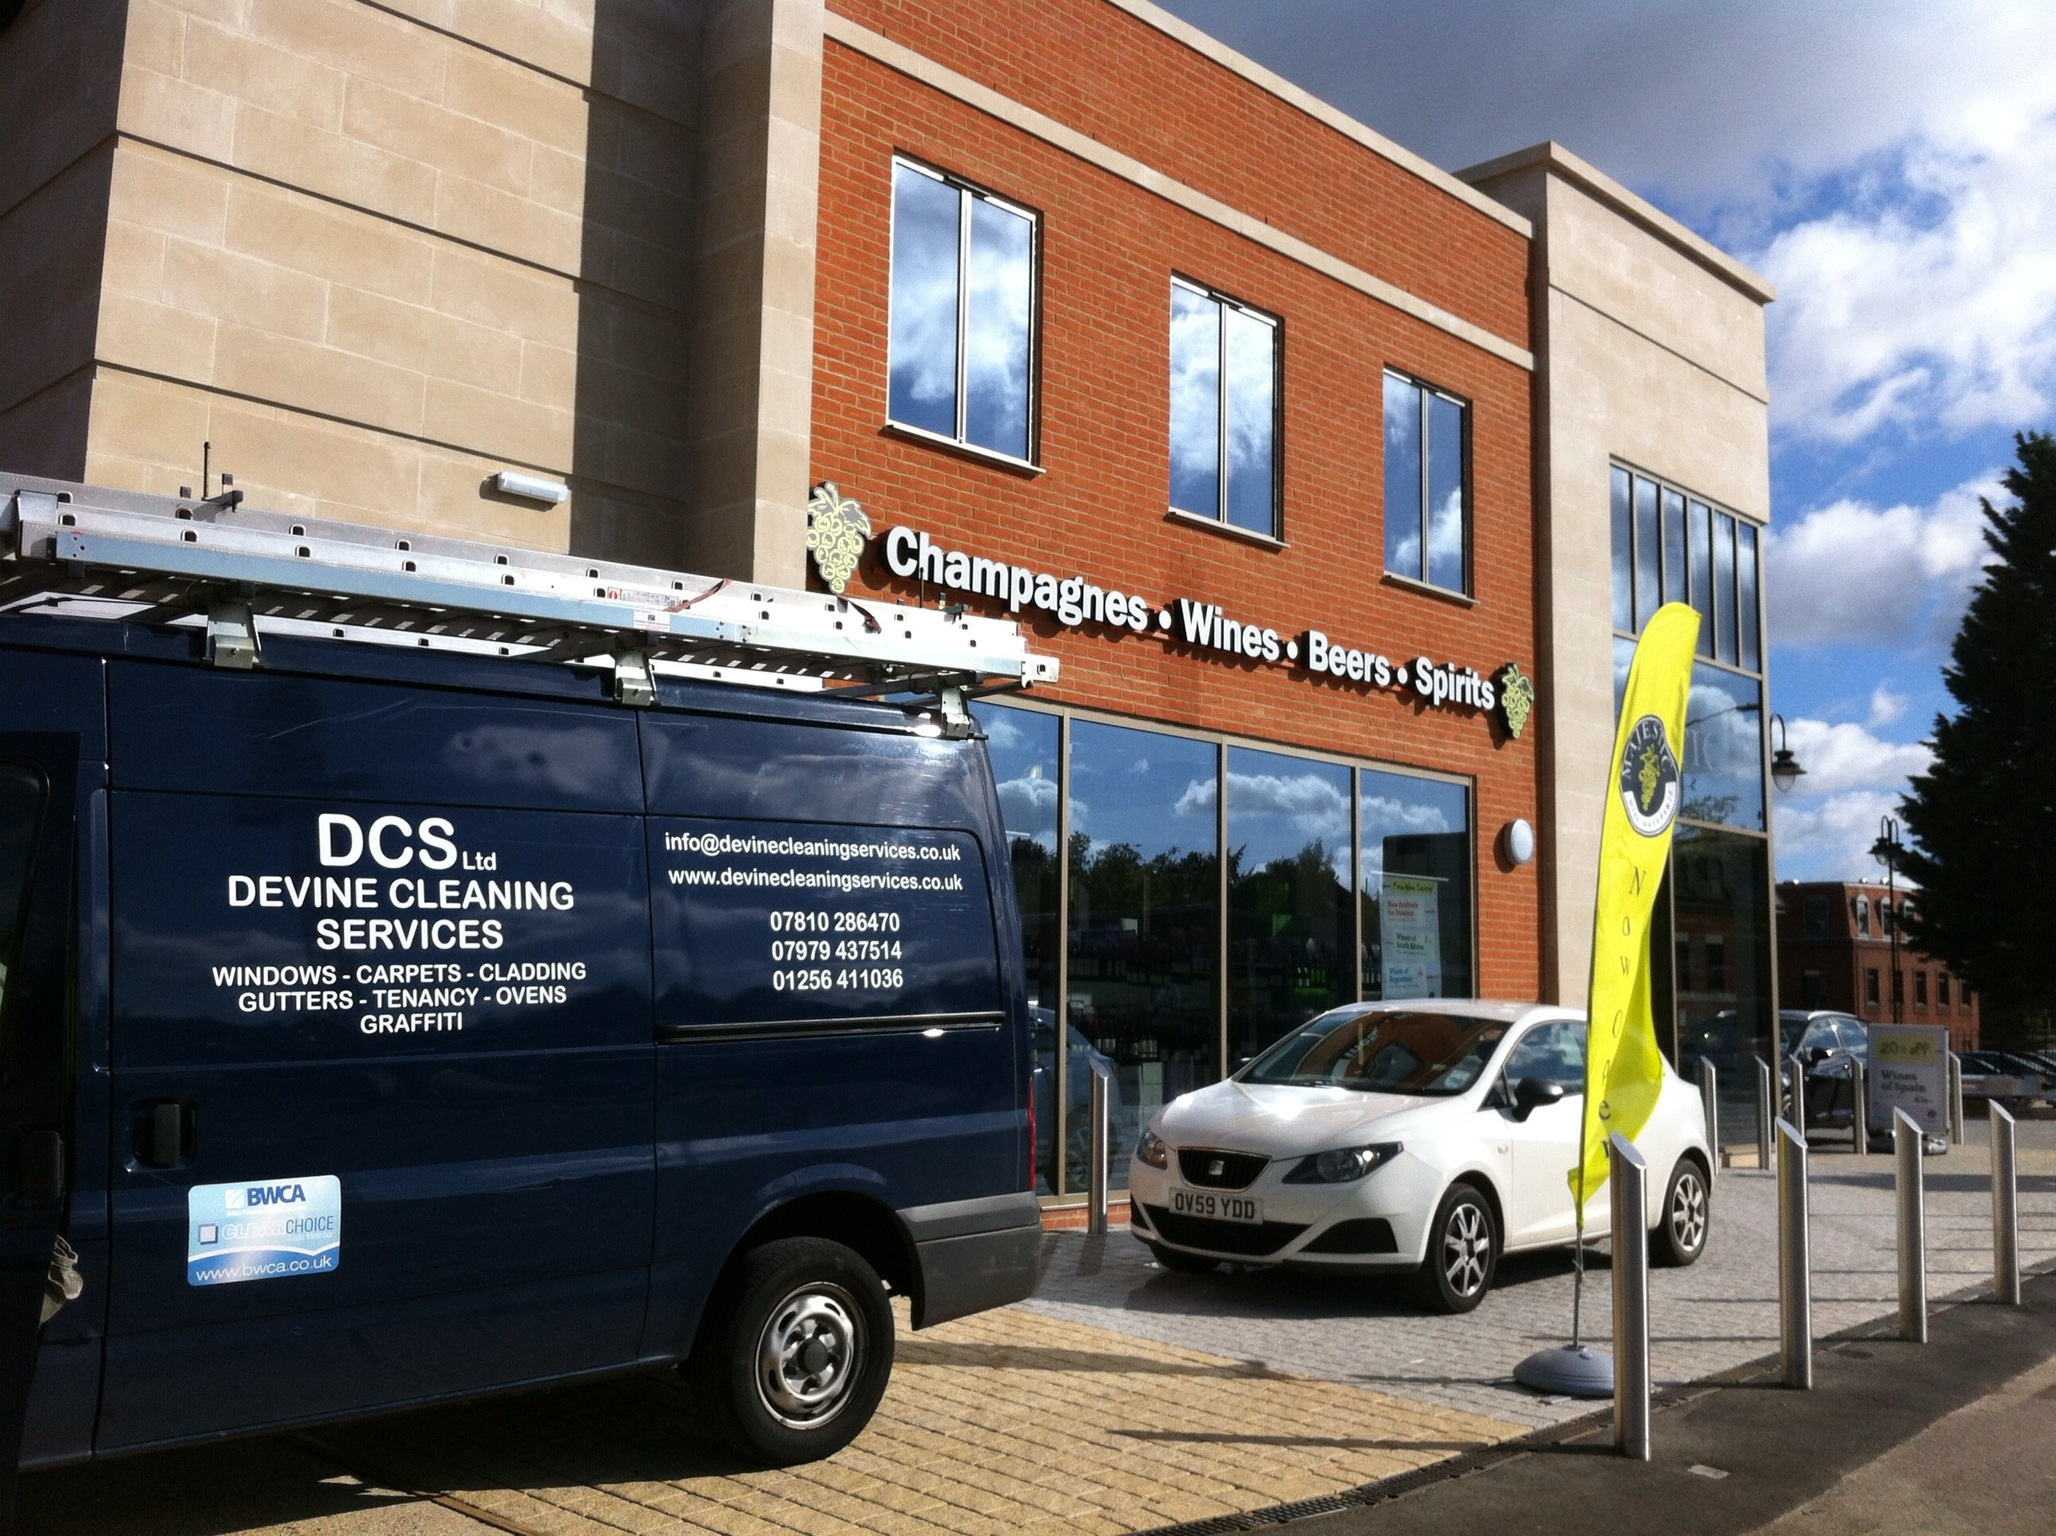 Commercial Cleaning Dcs Devine Cleaning Services Ltd